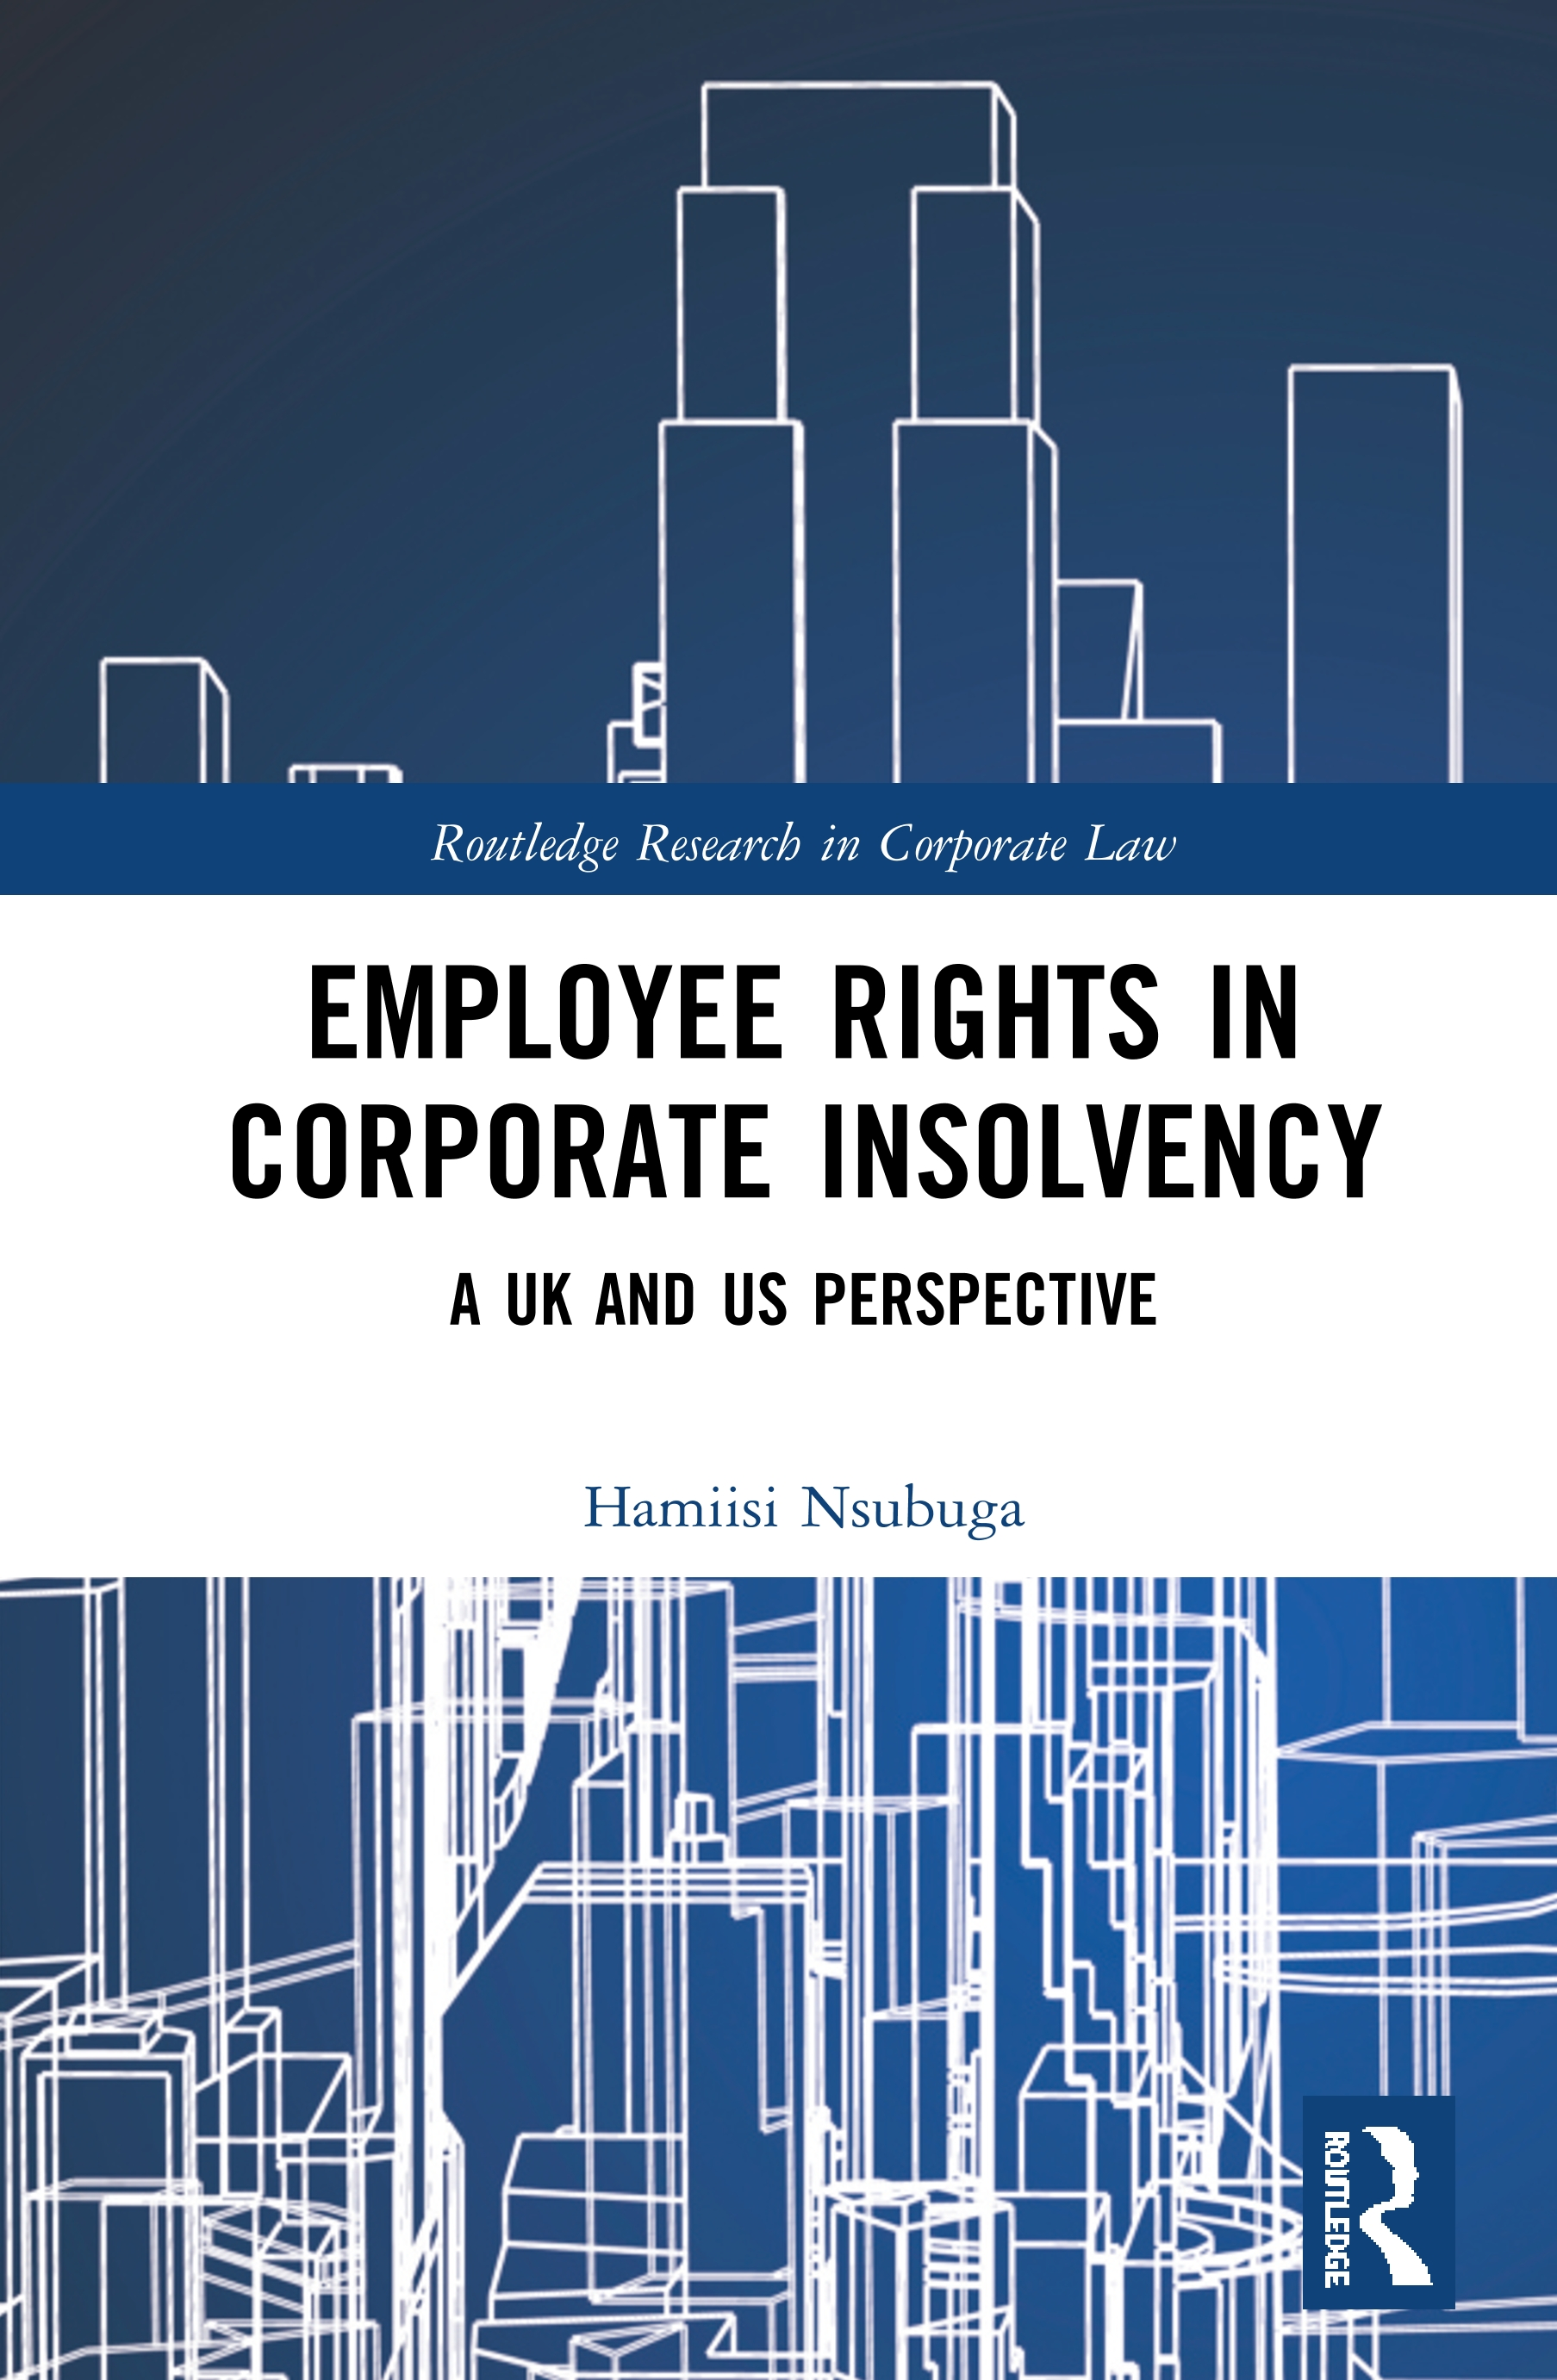 Employee Rights in Corporate Insolvency: A UK and US Perspective book cover